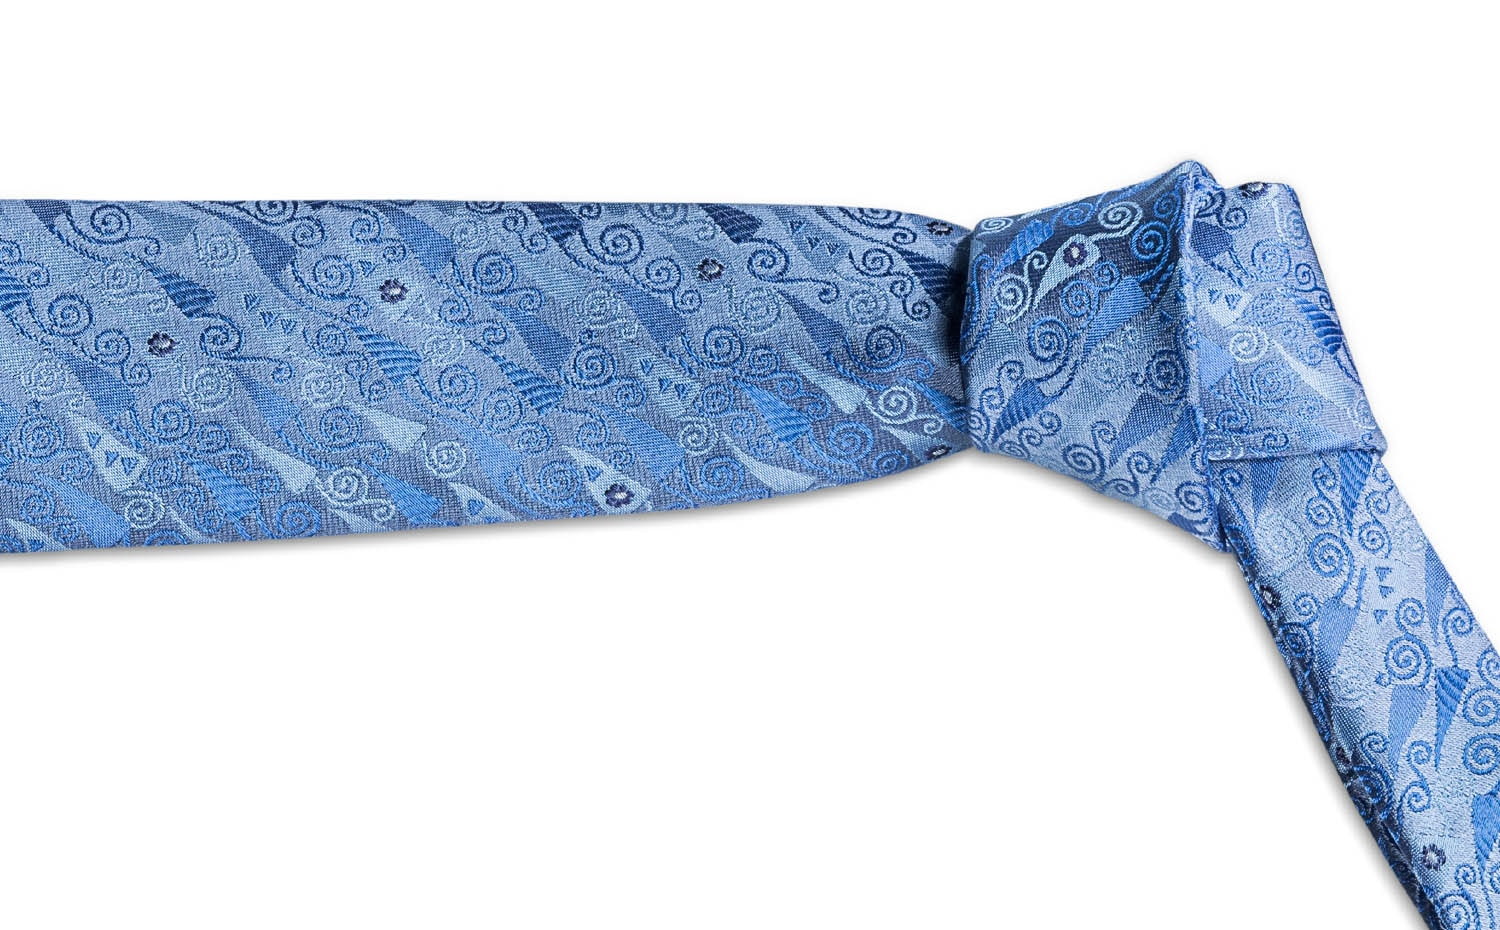 FREYWILLE: Gustav Klimt Silk Tie - Hope Collection